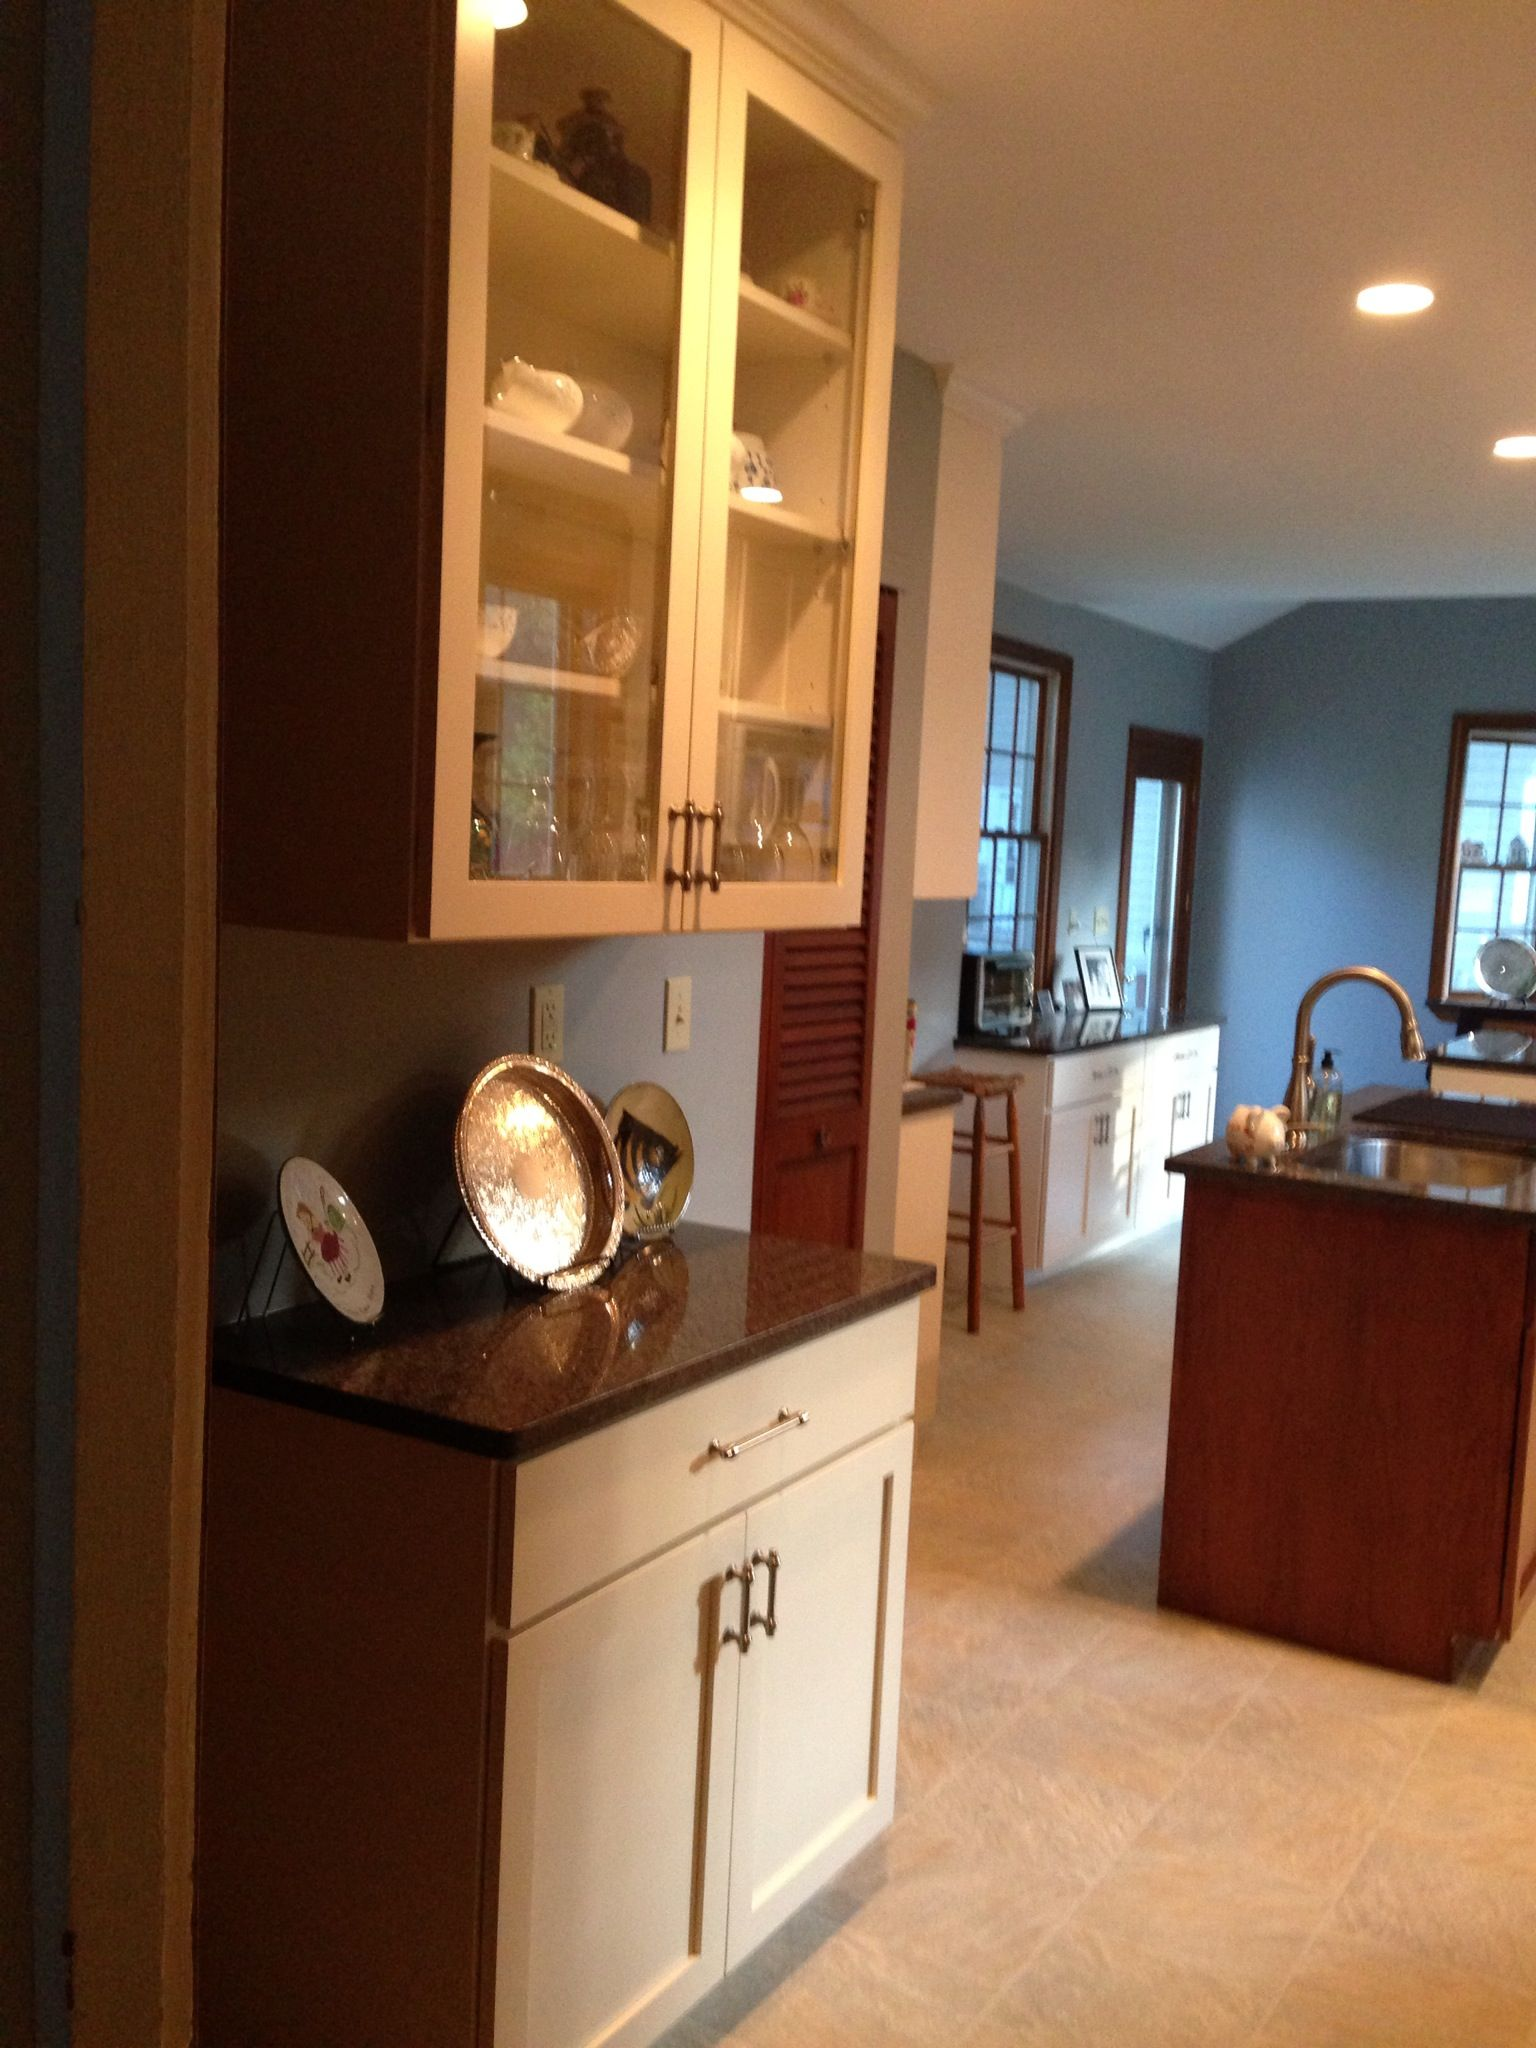 Built in china cabinet | New kitchen, China cabinet, Room